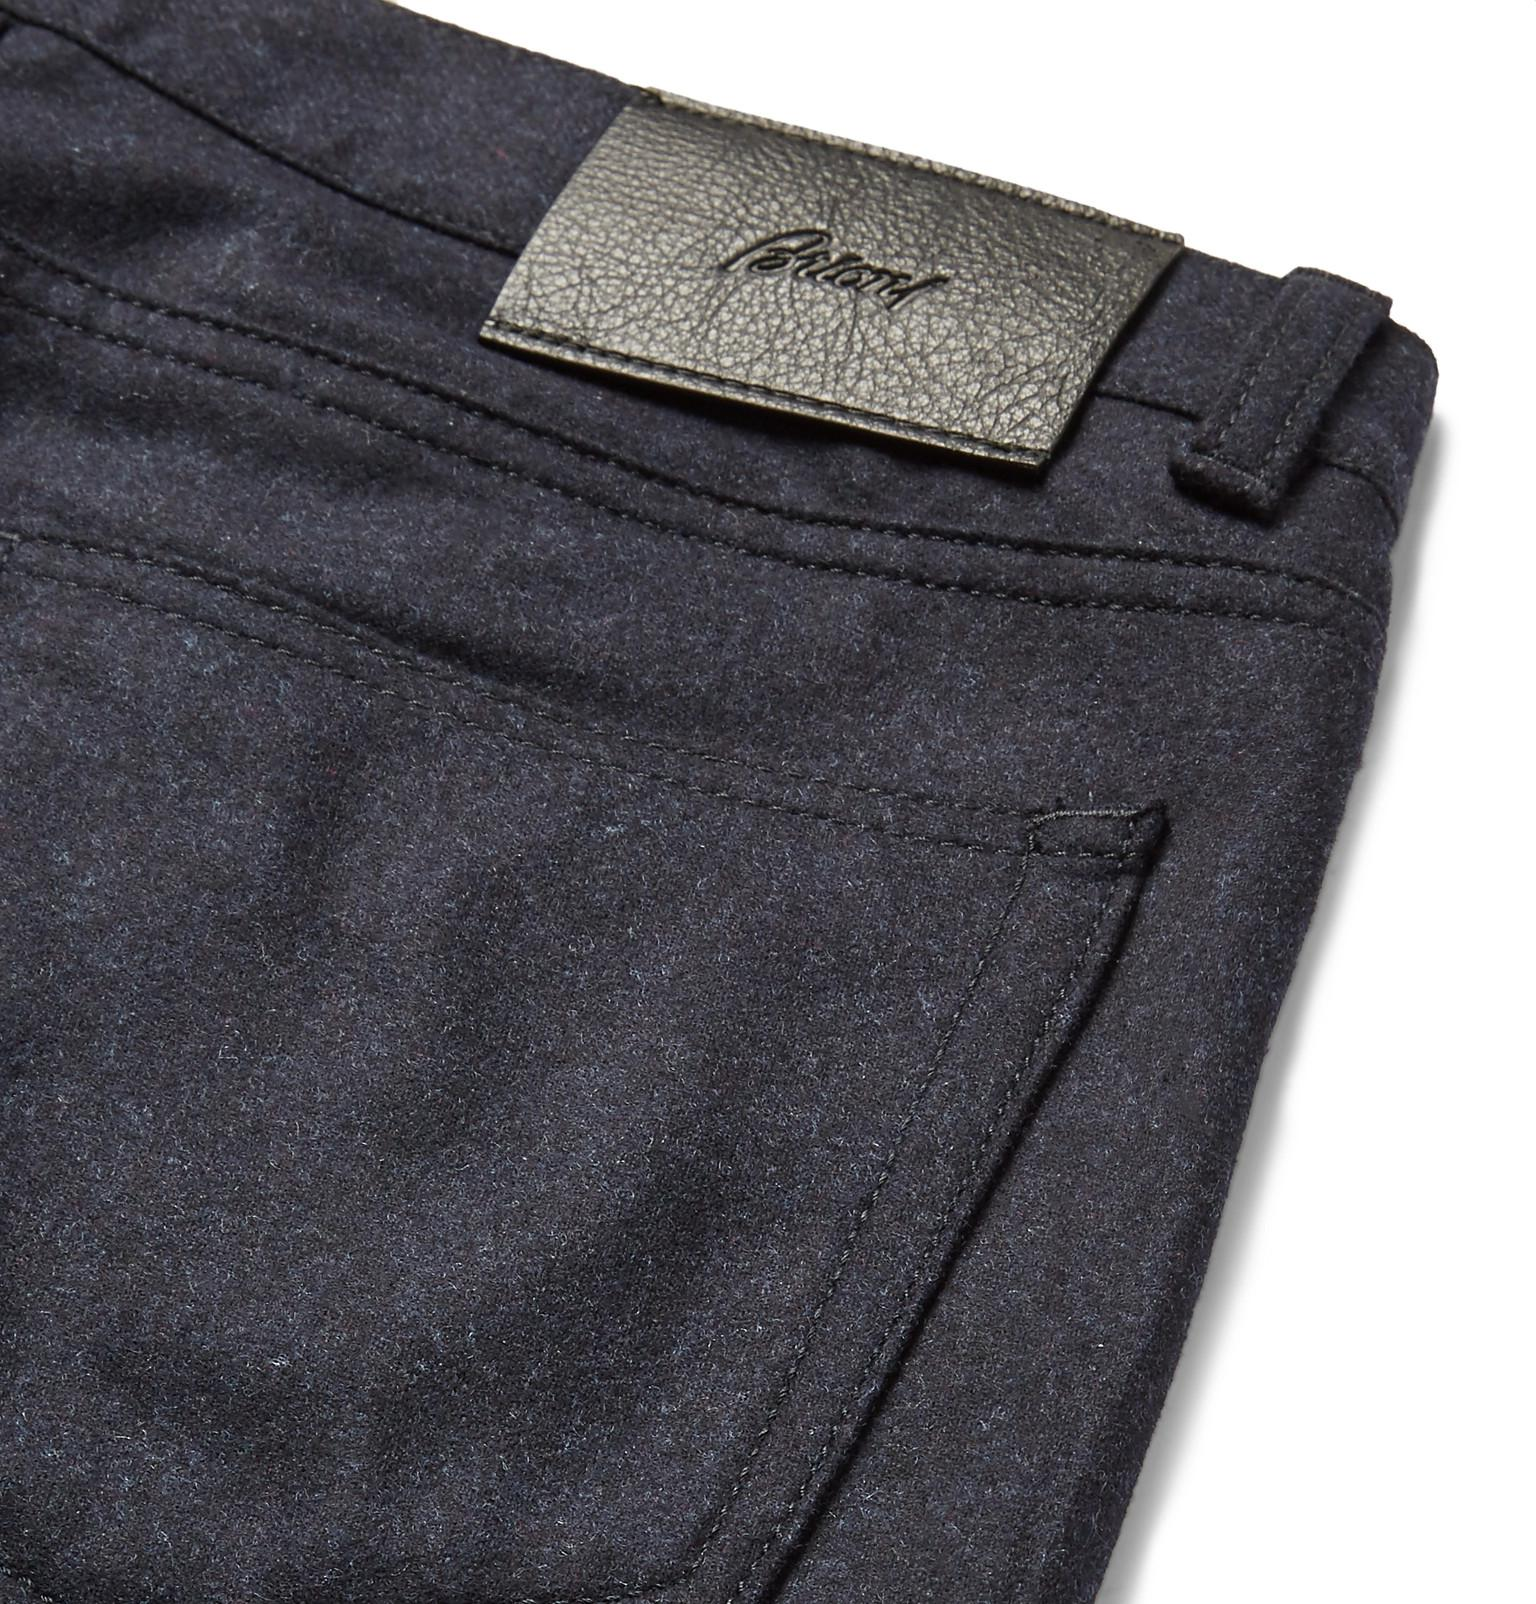 Brioni Slim-fit Mélange Wool Trousers in Navy (Blue) for Men